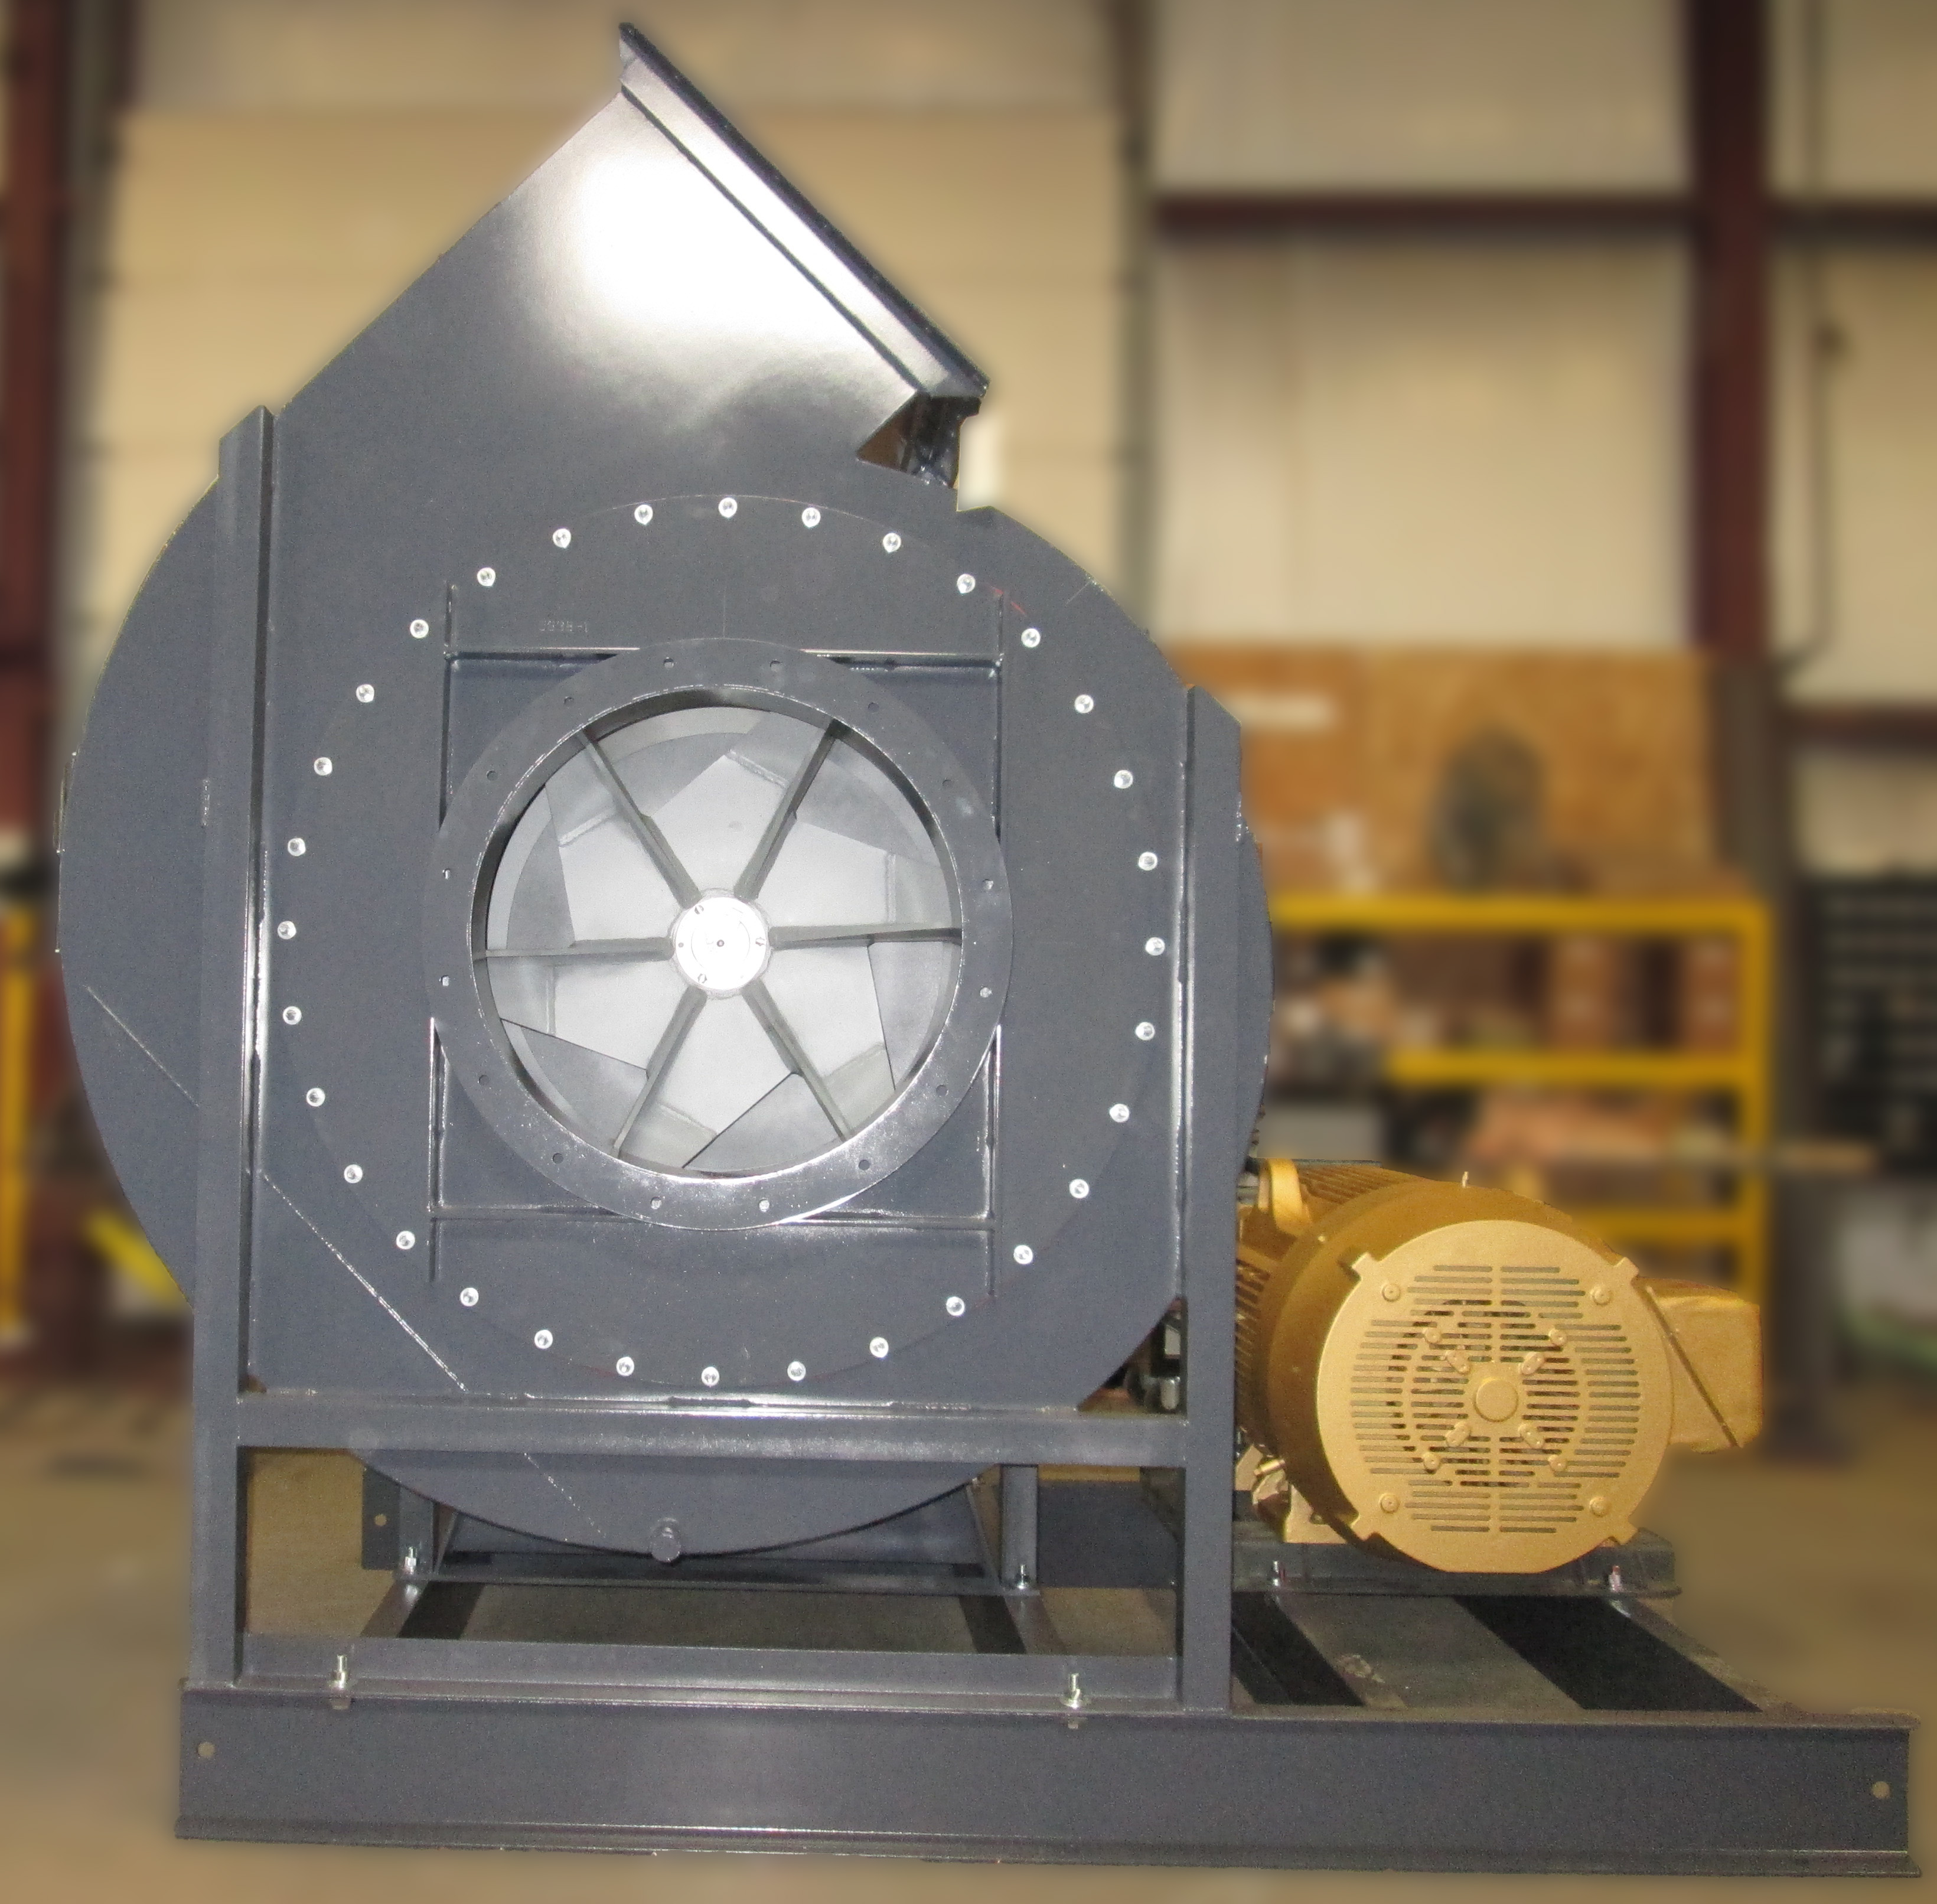 Industrial Blower Wheels : Industrial exhaust fan paddle wheel airpro blower